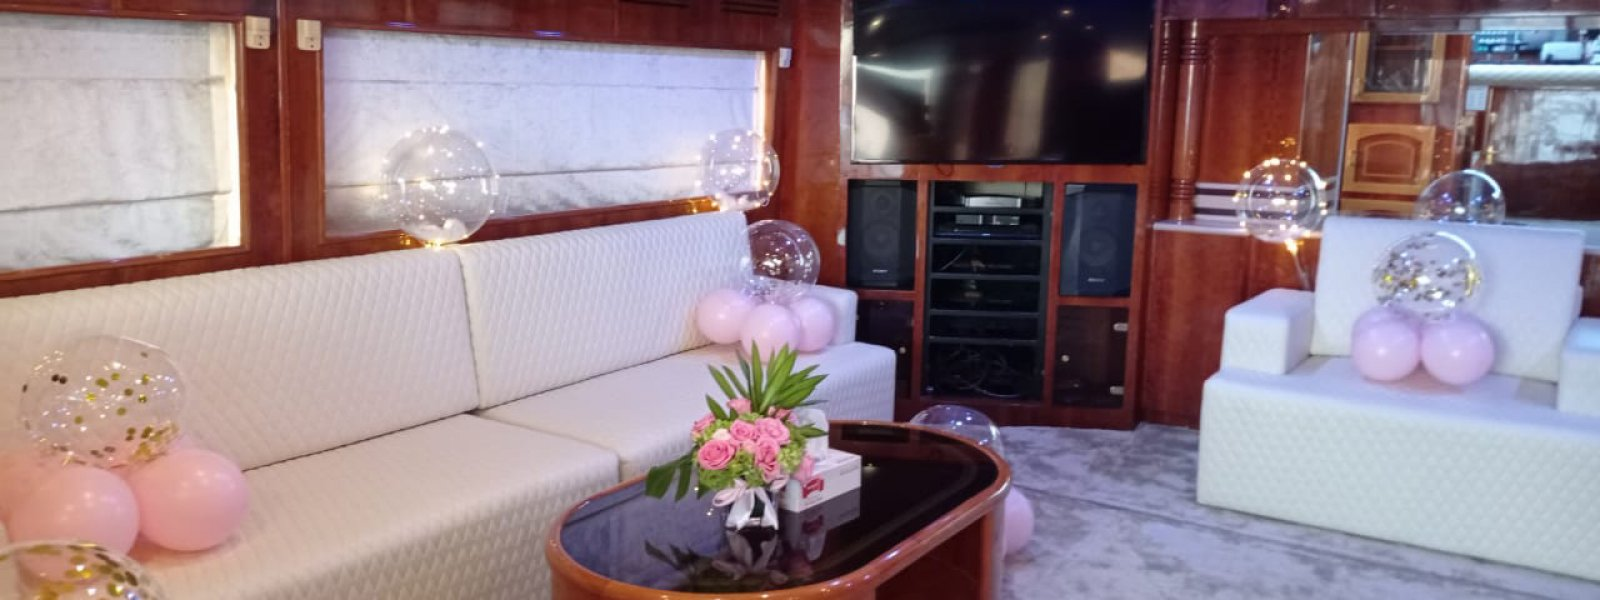 Luxury Interior of the yacht